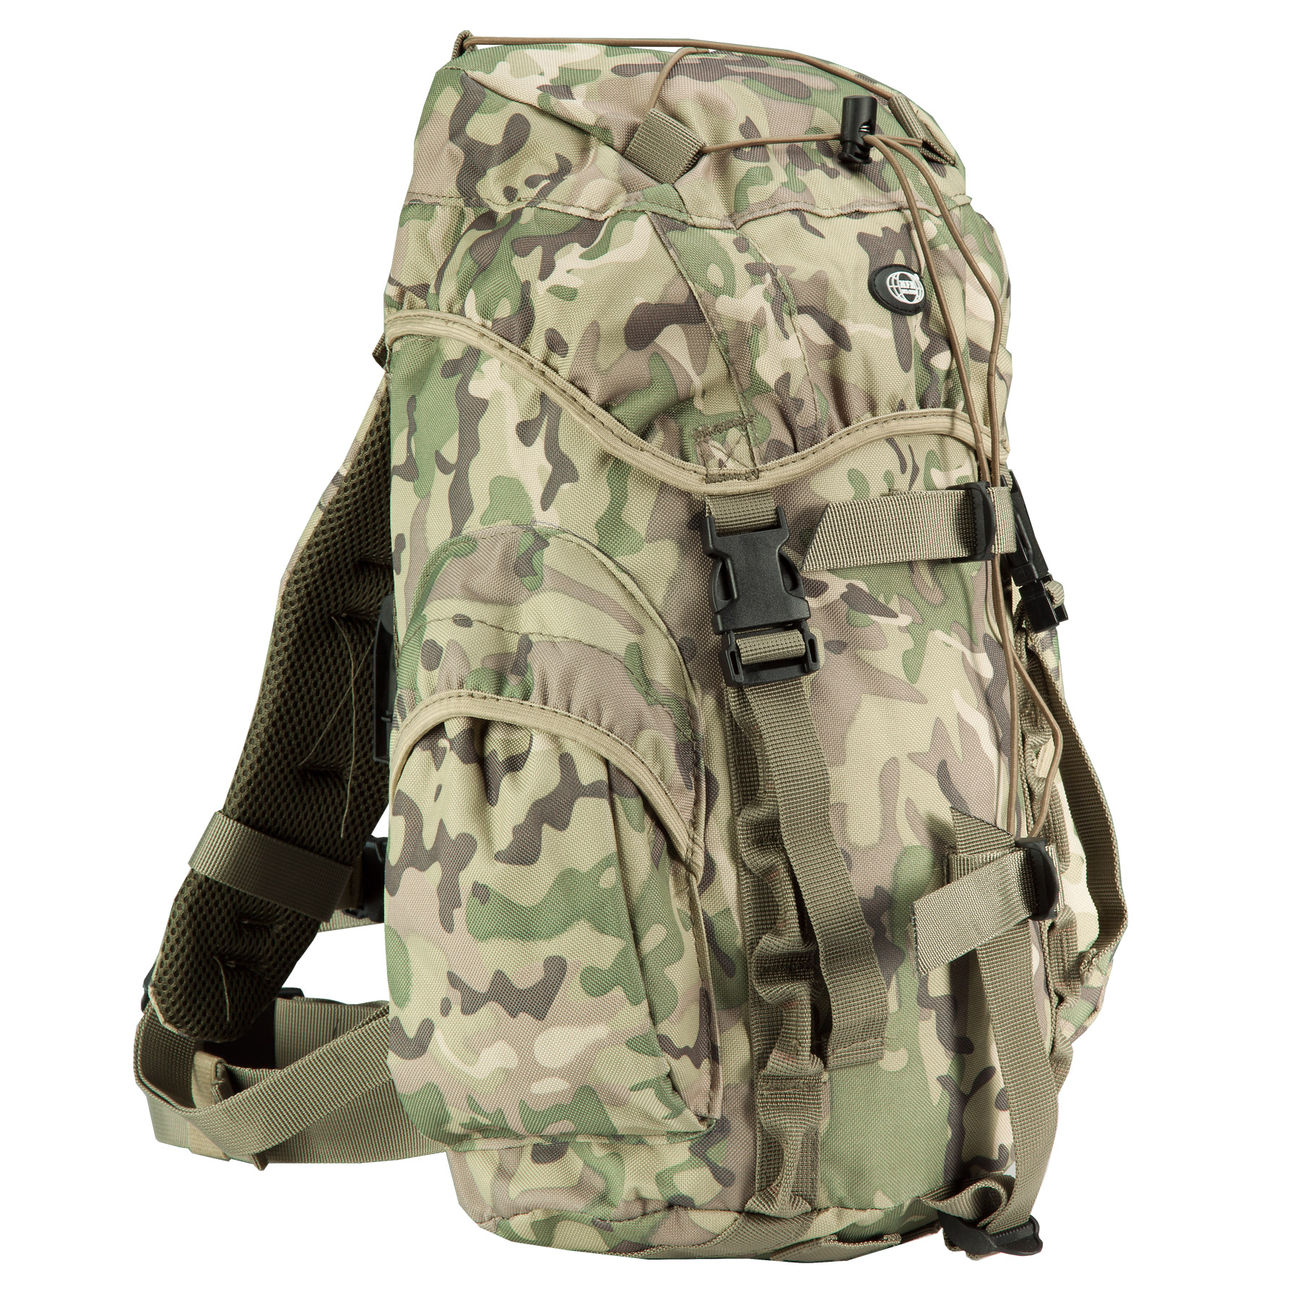 MFH Rucksack Recon I operation camo 0